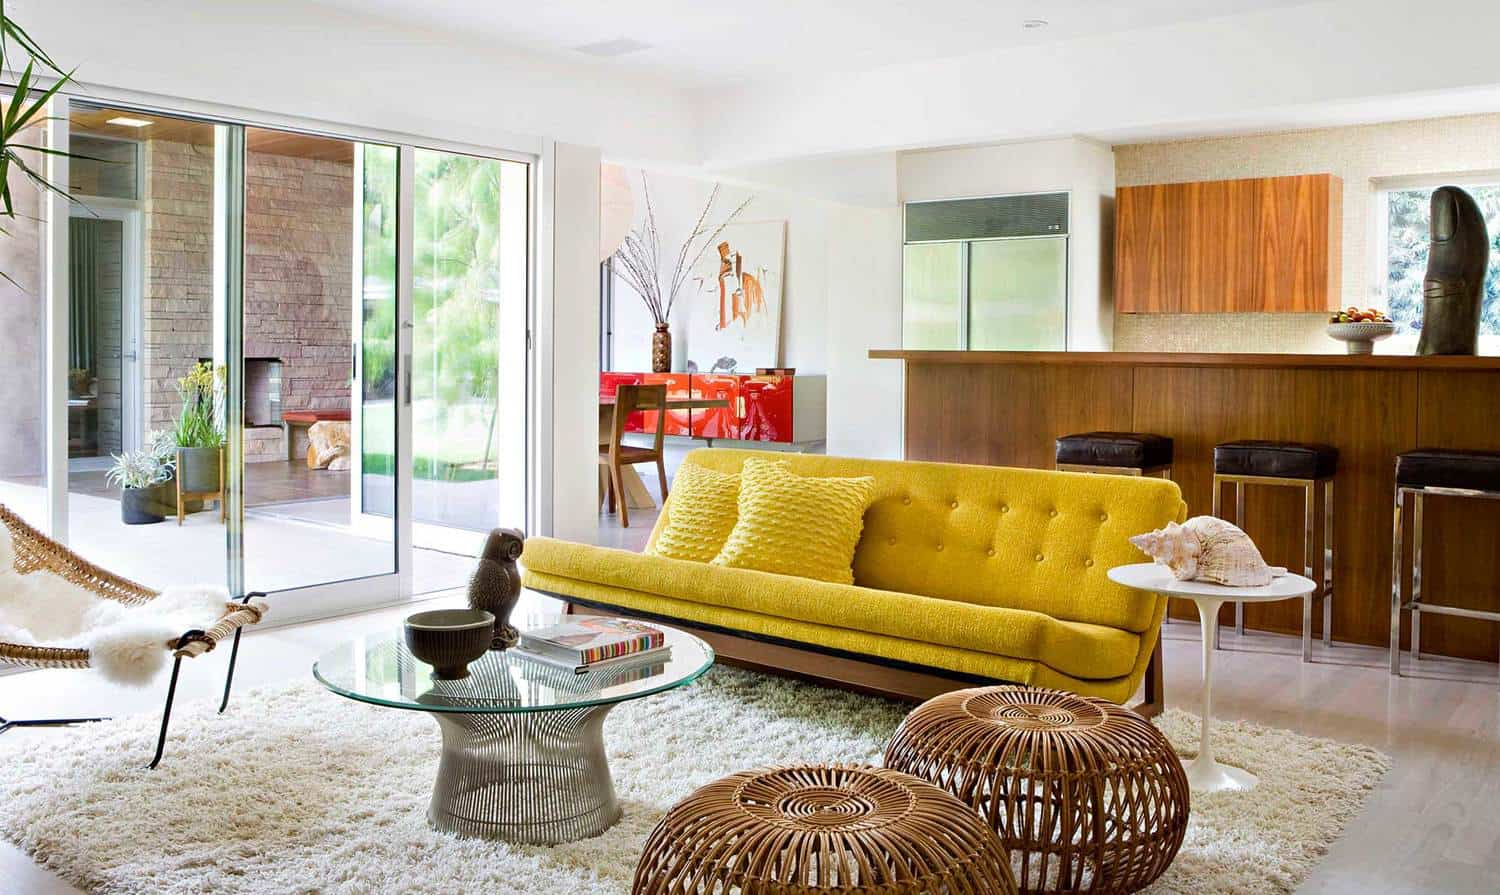 Mid century modern living room ideas Winduprocketapps Trendir Midcentury Living Room Ideas That Are Timeless